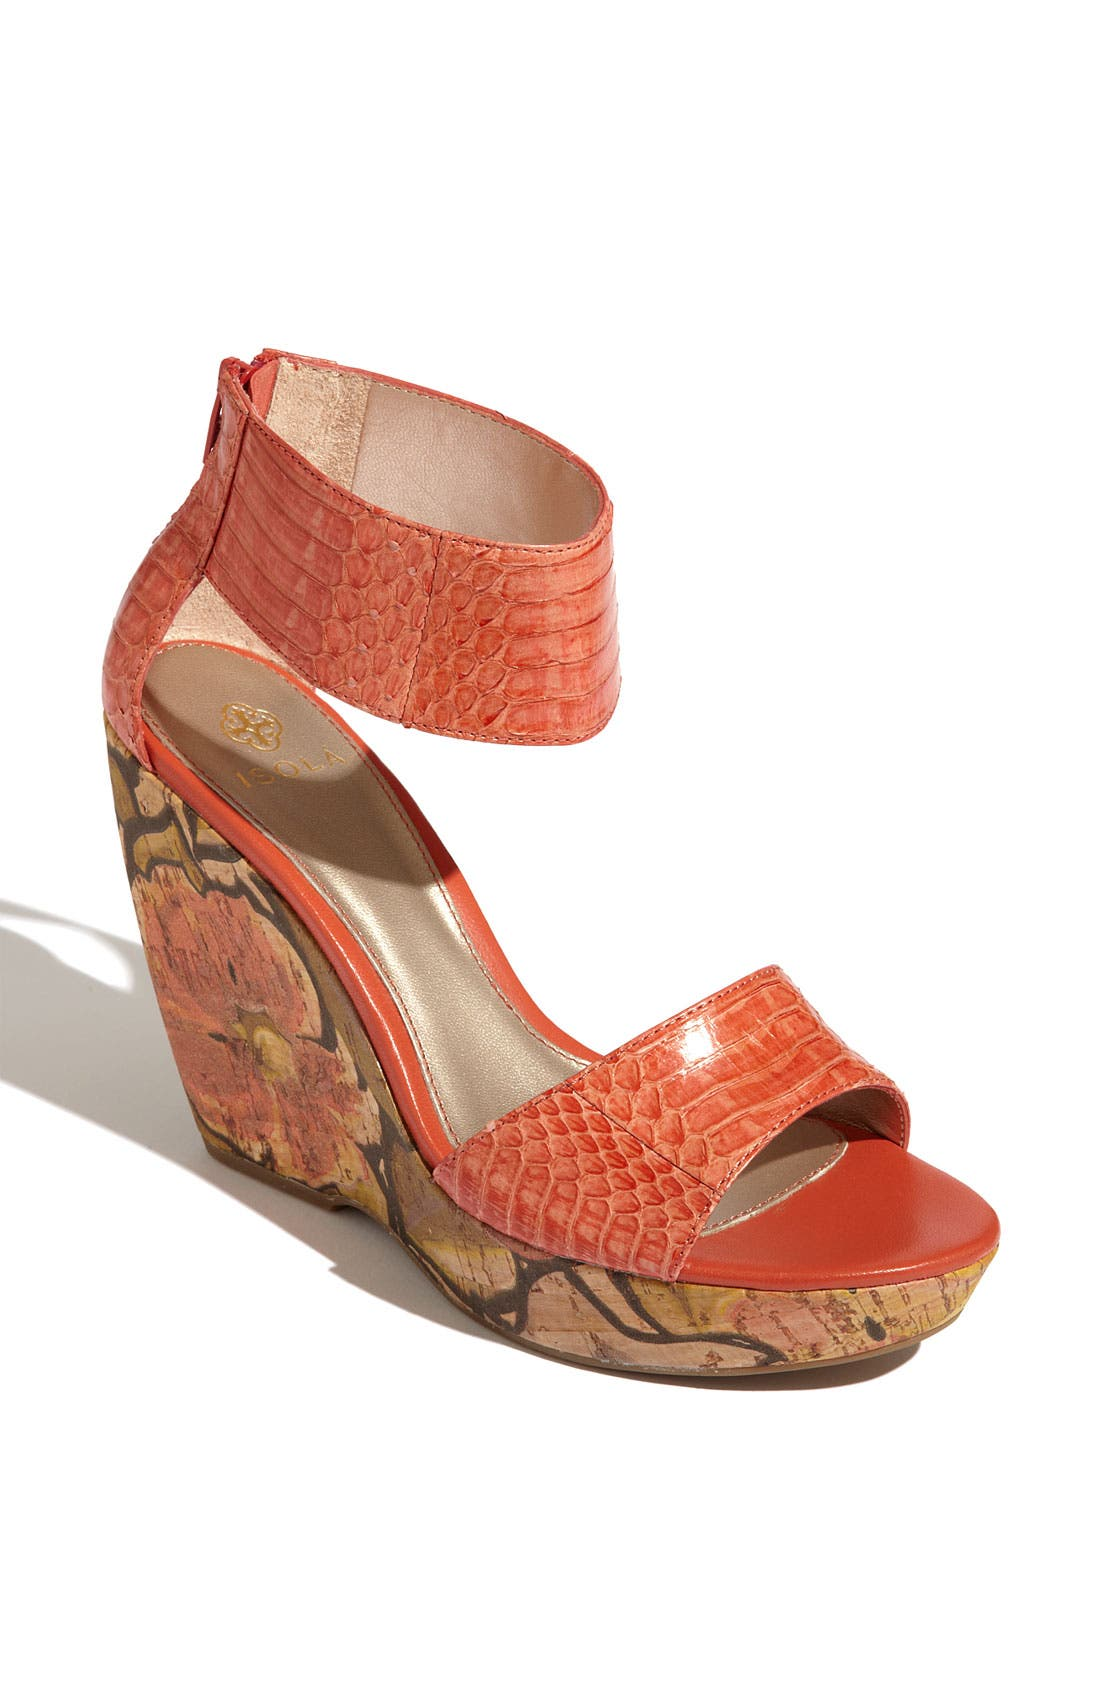 Alternate Image 1 Selected - Isolá 'Oasis' Wedge Sandal